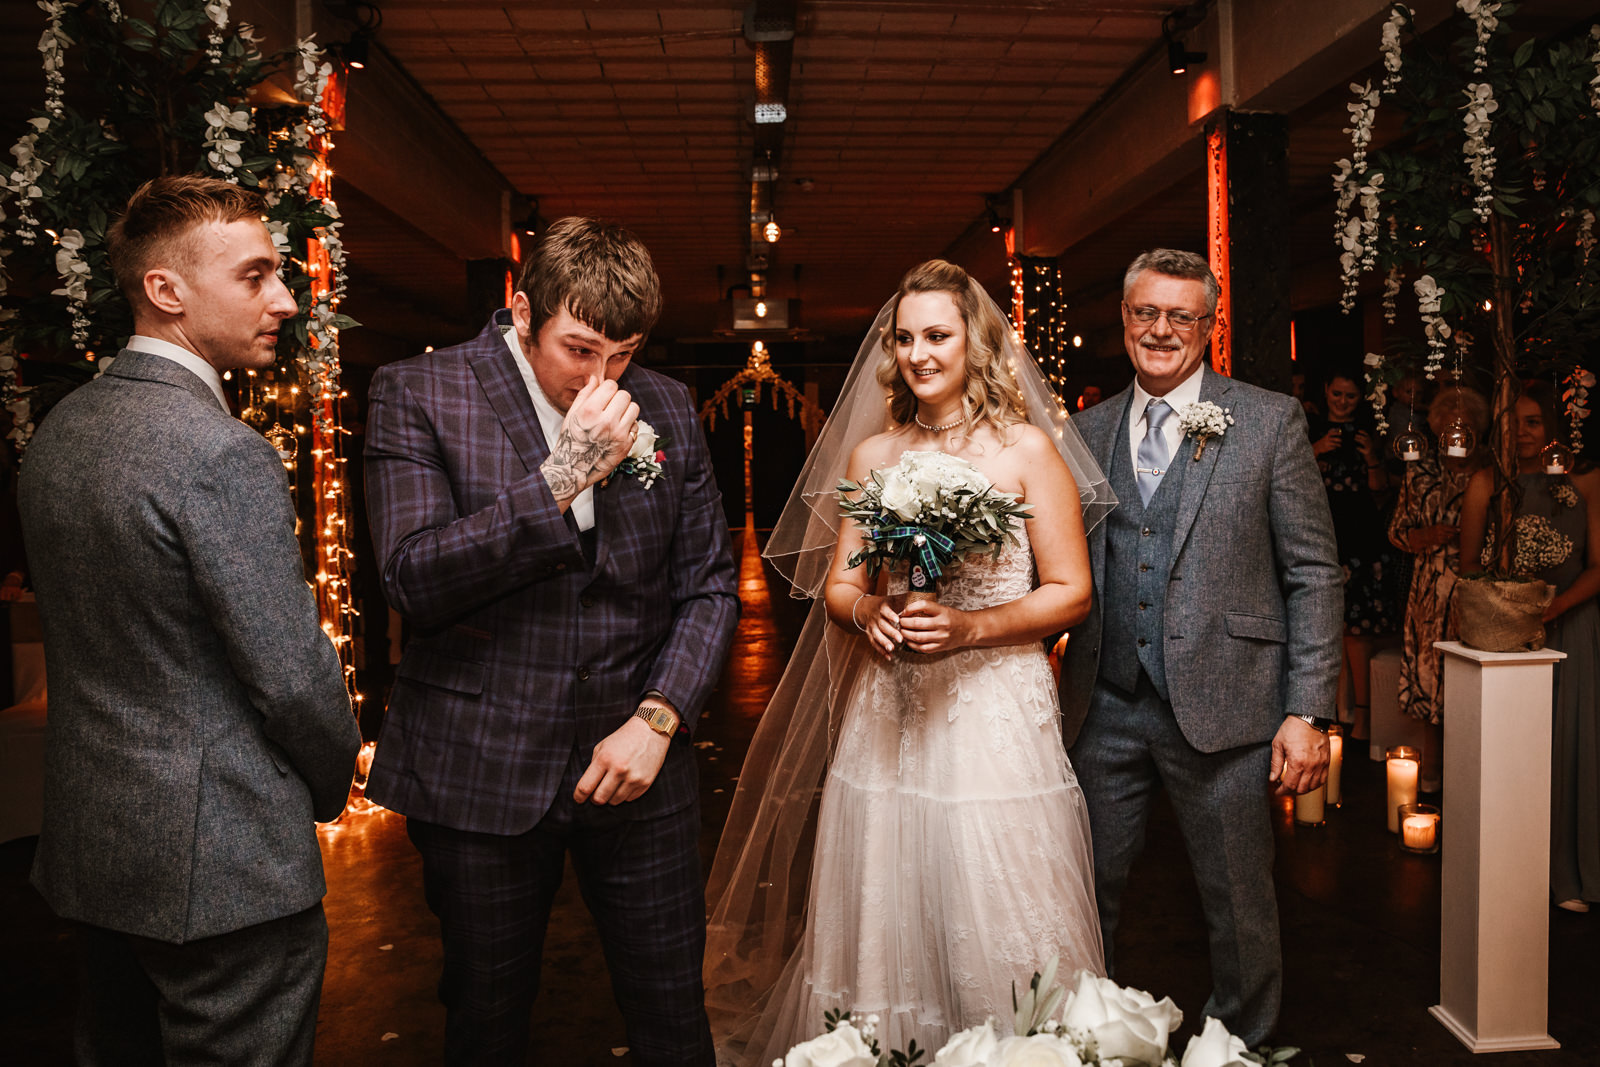 Groom in tears when he first looks at his bride in her wedding dress